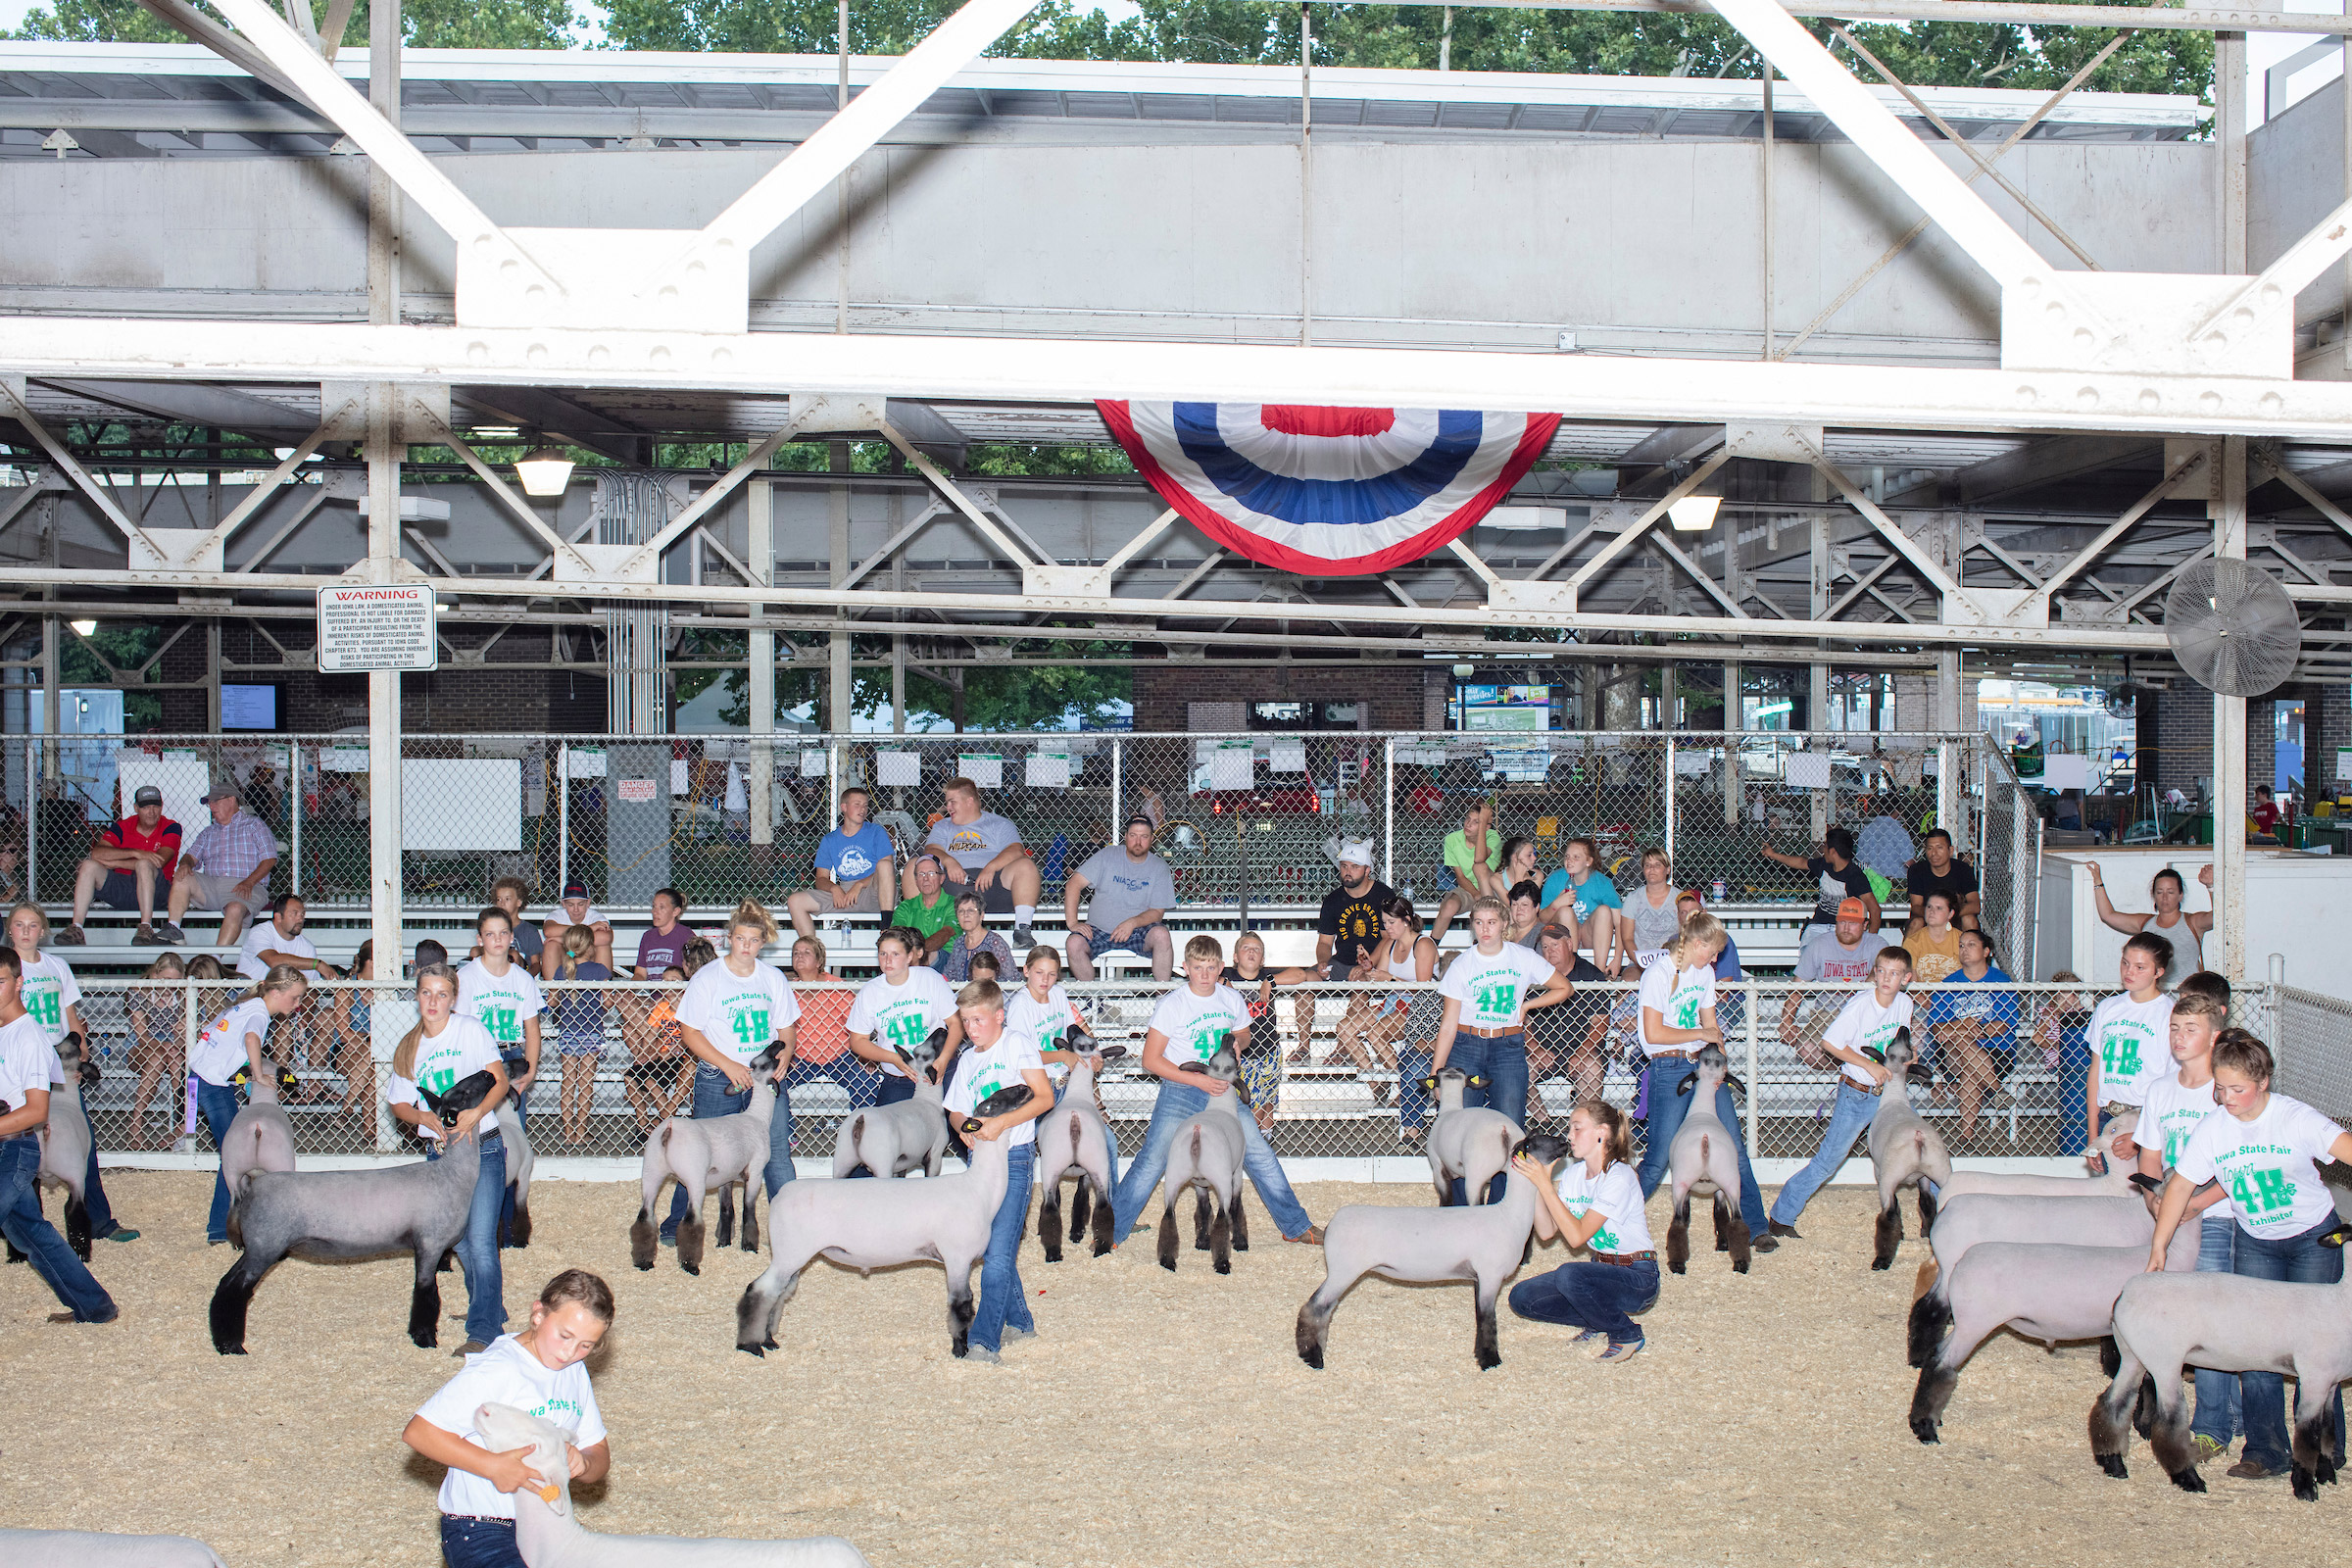 Children take part in the Intermediate 4-H Sheep Showmanship competition in the Sheep Barn at the Iowa State Fair in Des Moines on Aug. 11. The competitors are judged on their ability to display and control the sheep rather than on the characteristics of the animals themselves.